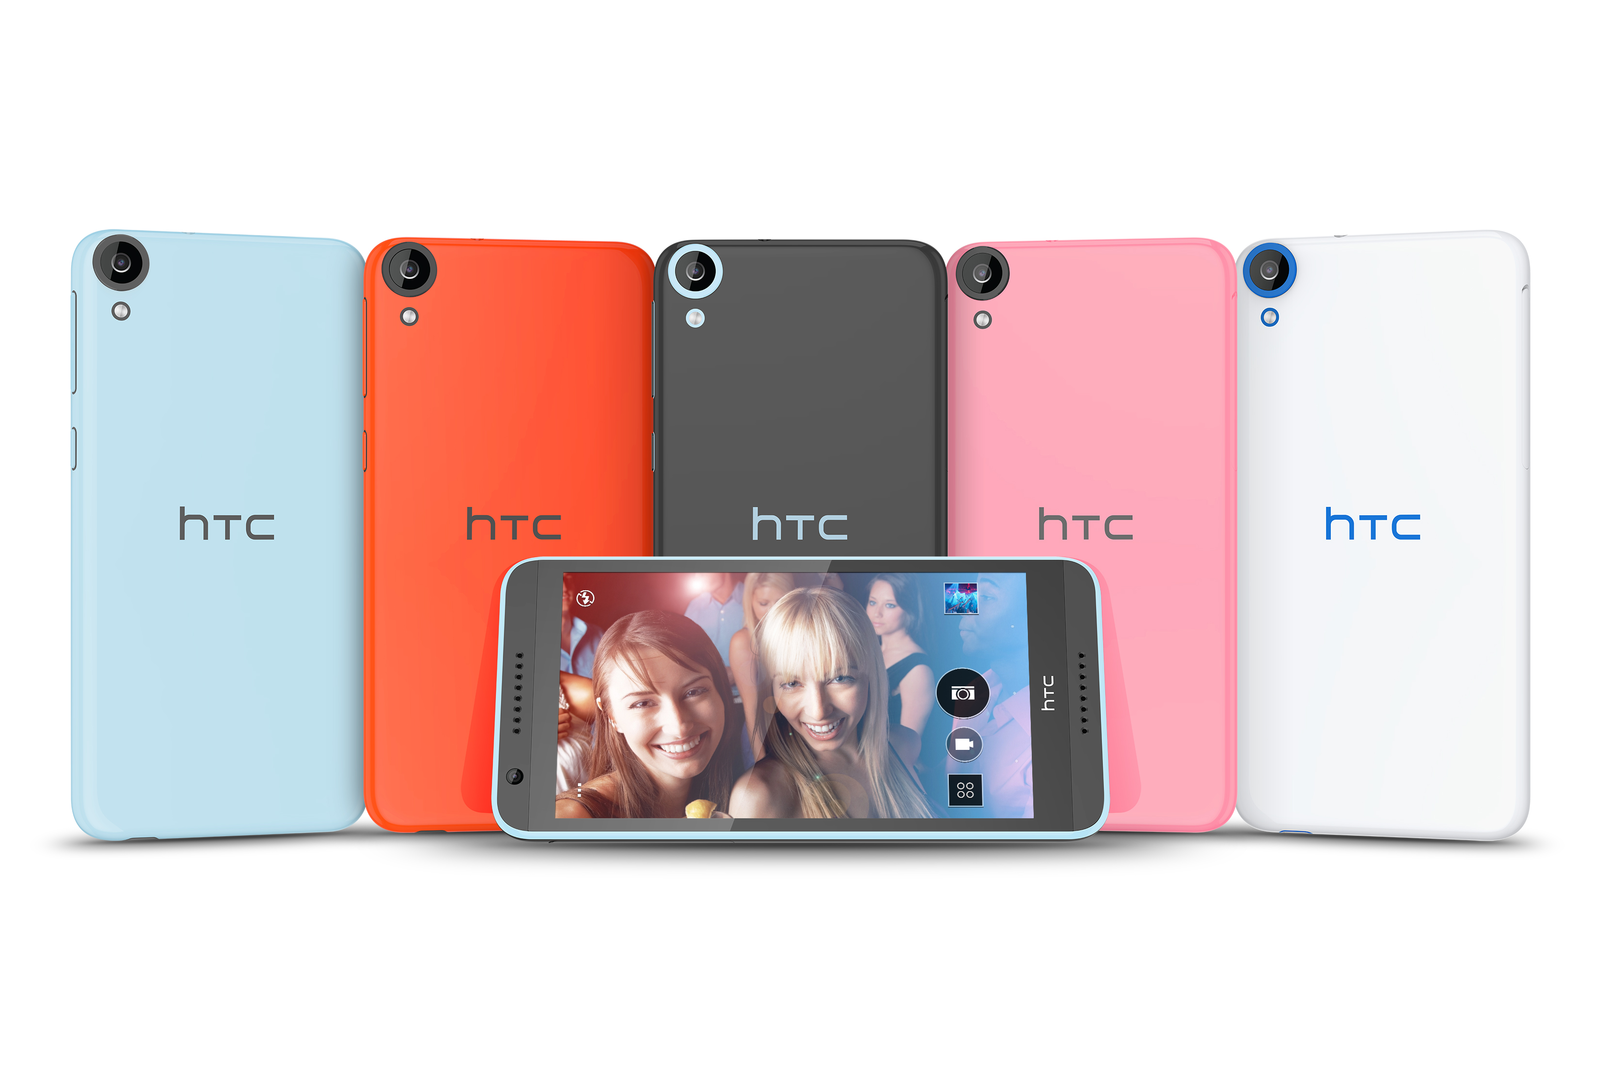 HTC-Desire-820-Group.png